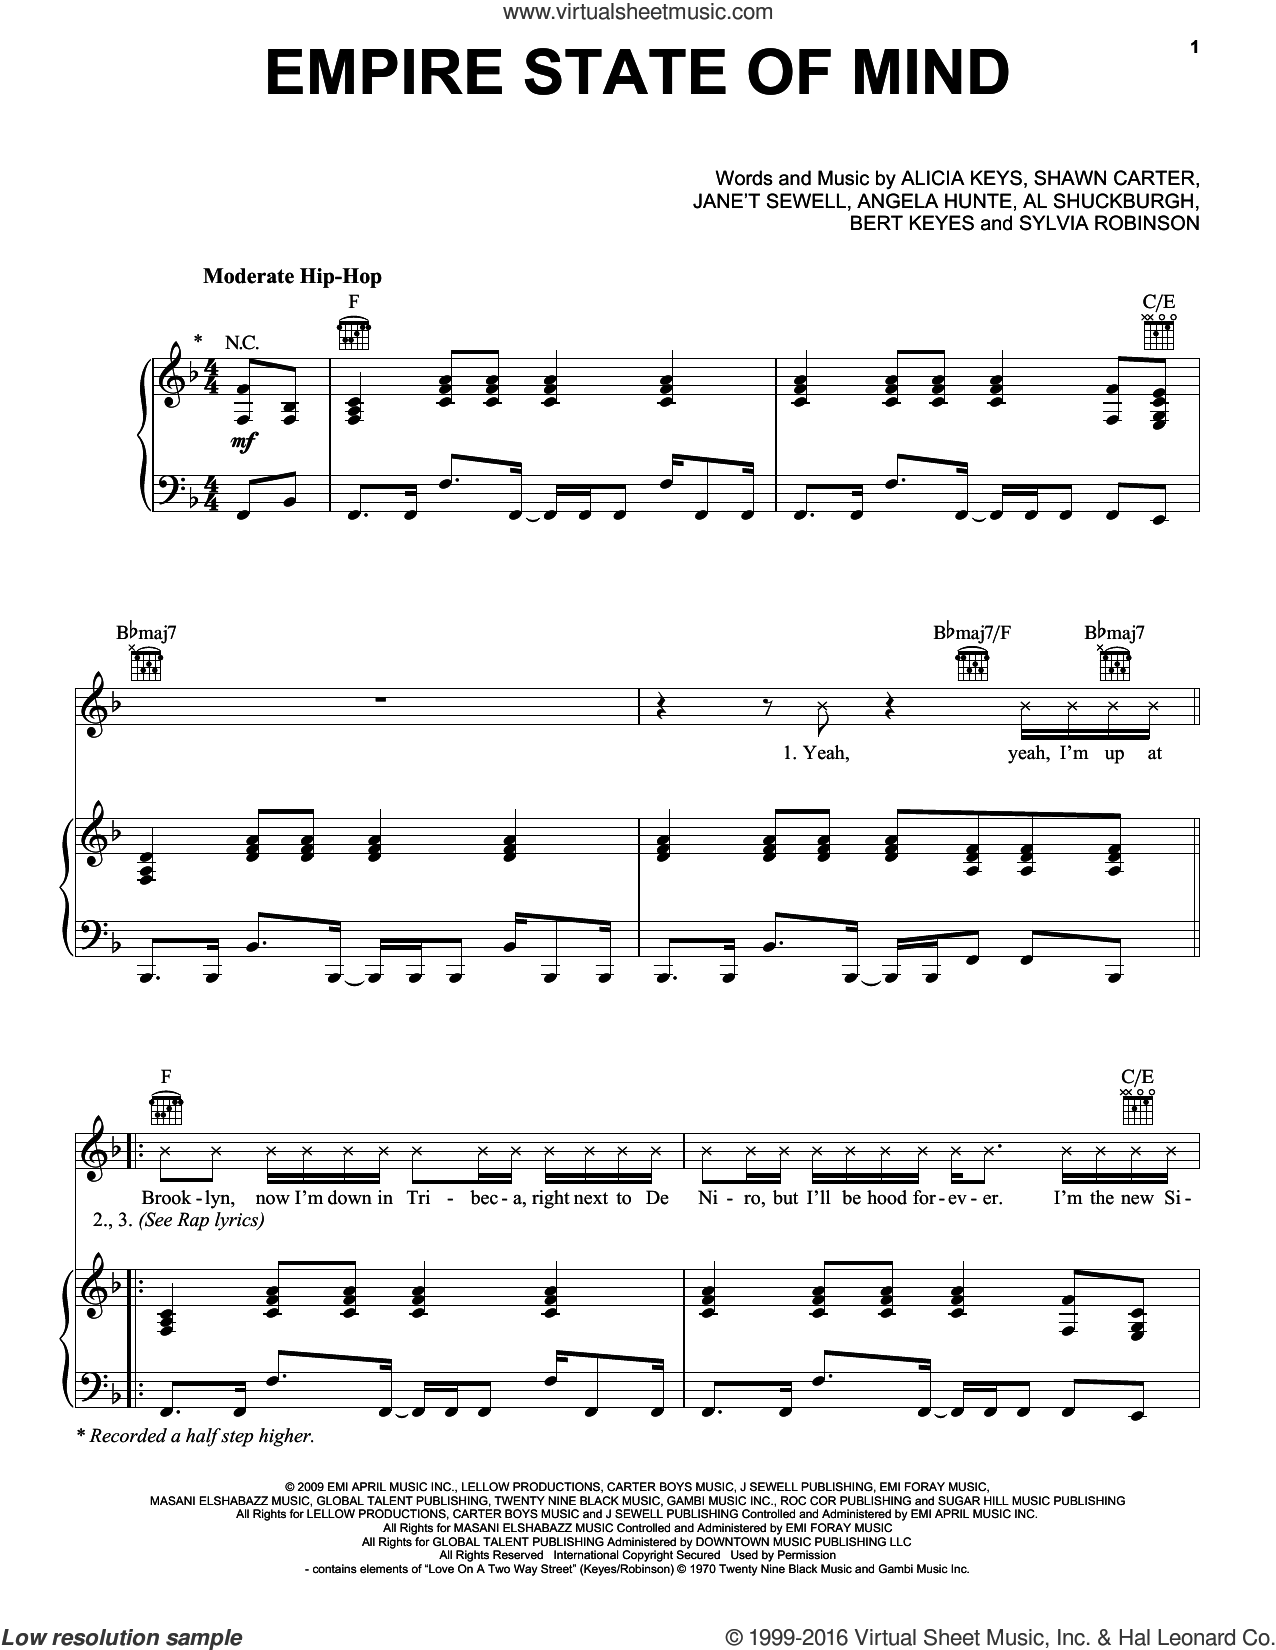 Empire State Of Mind sheet music for voice, piano or guitar by Sylvia Robinson